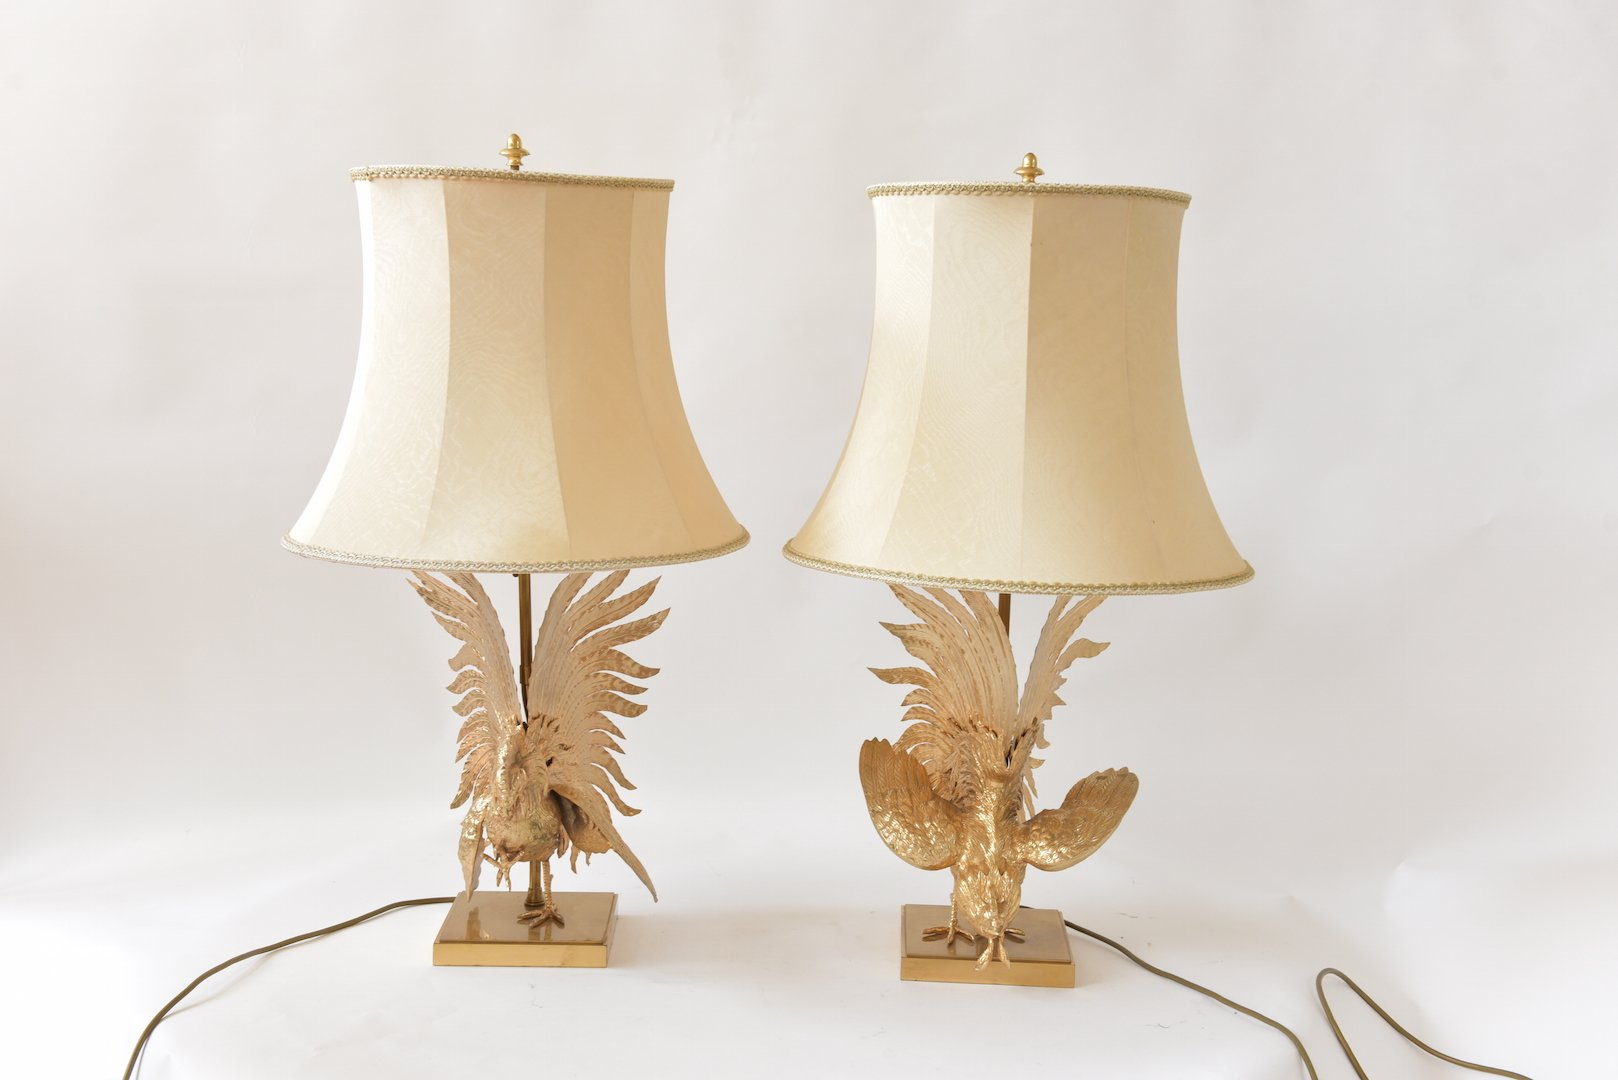 Vintage Gaulois Coqs Table Lamps, Set Of 2 For Sale At Pamono